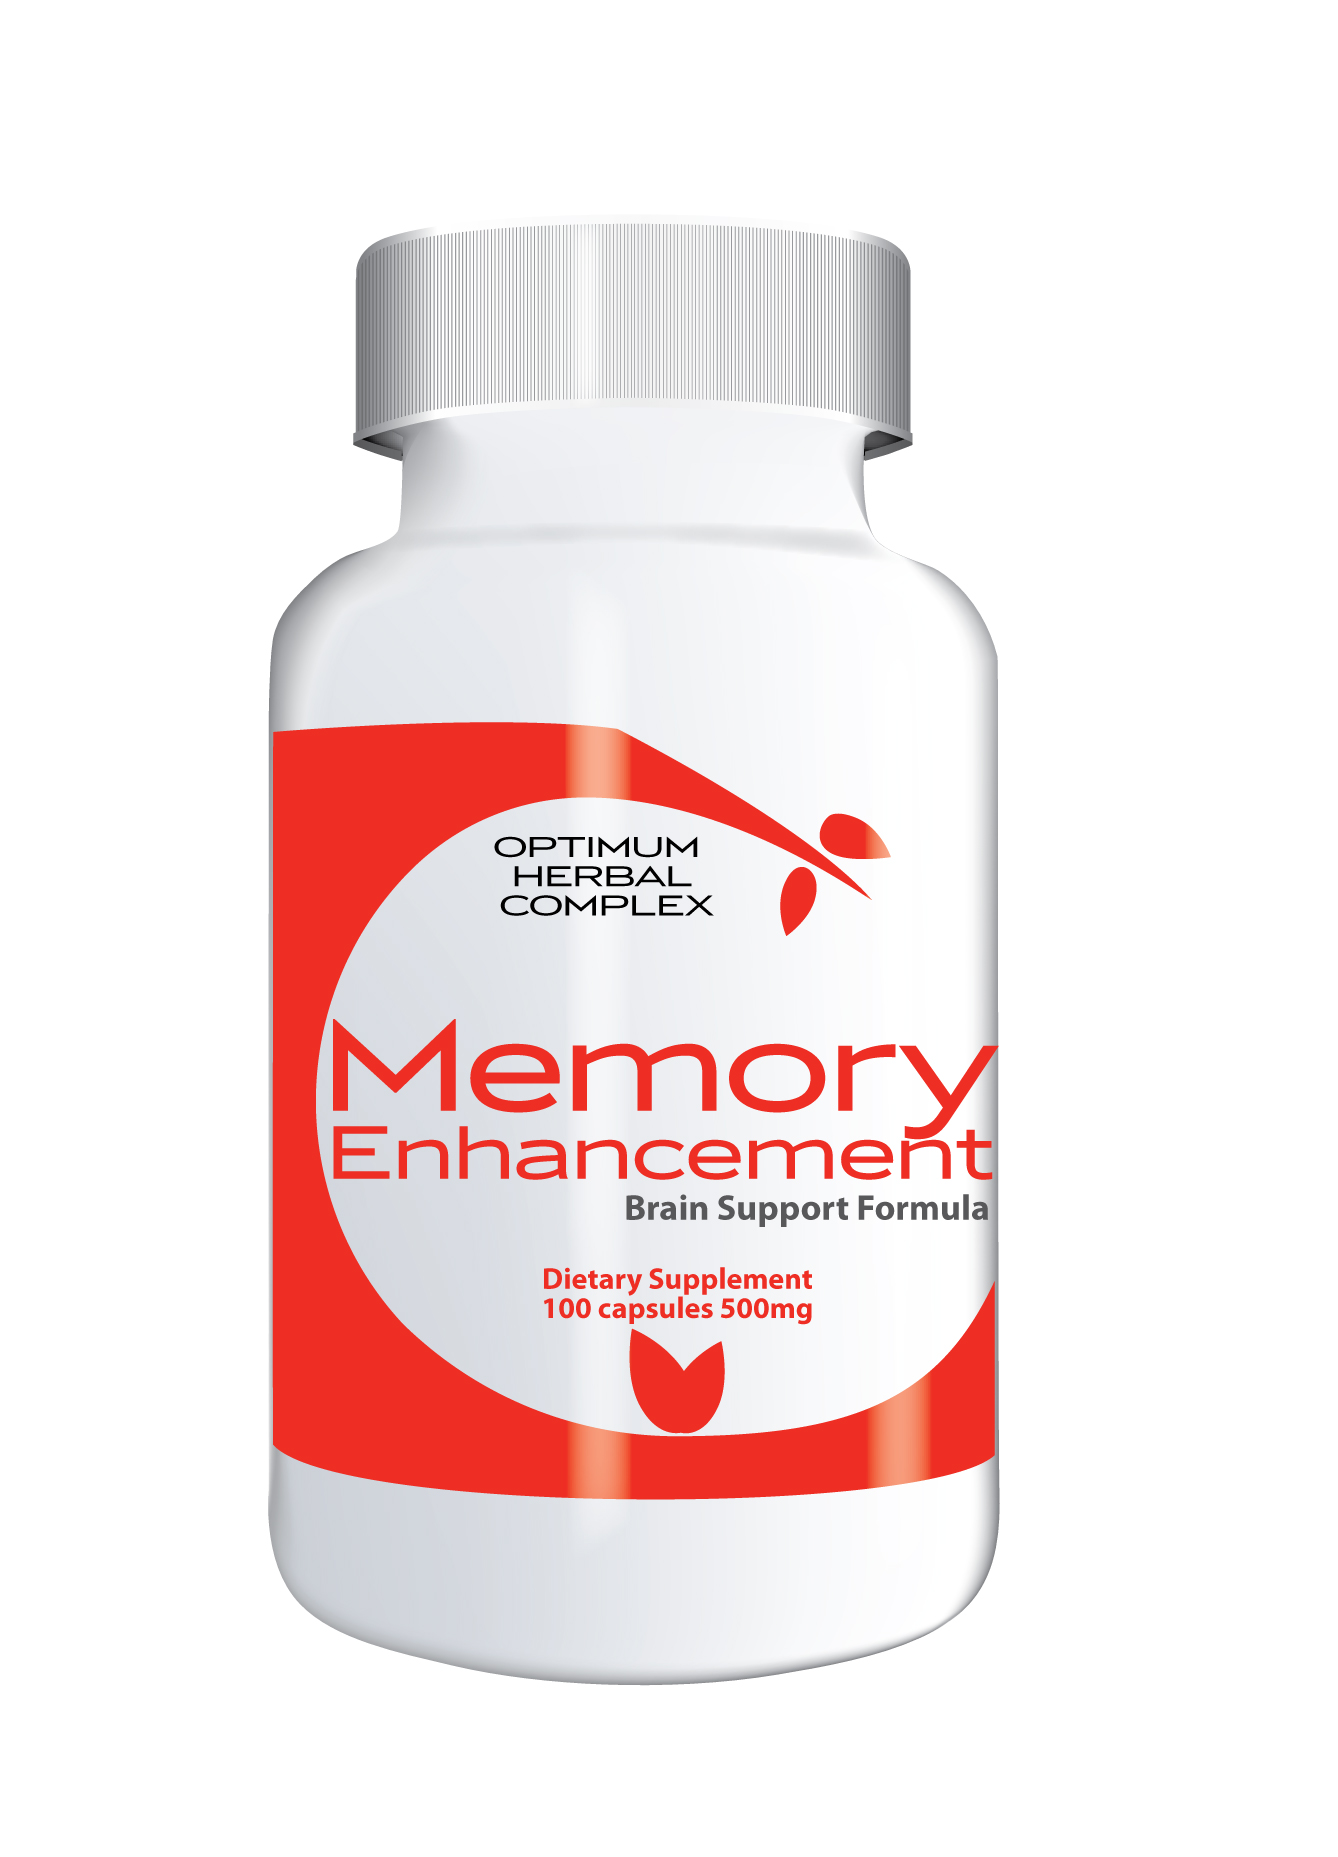 Memory Enhancement 100 capsules 500mg